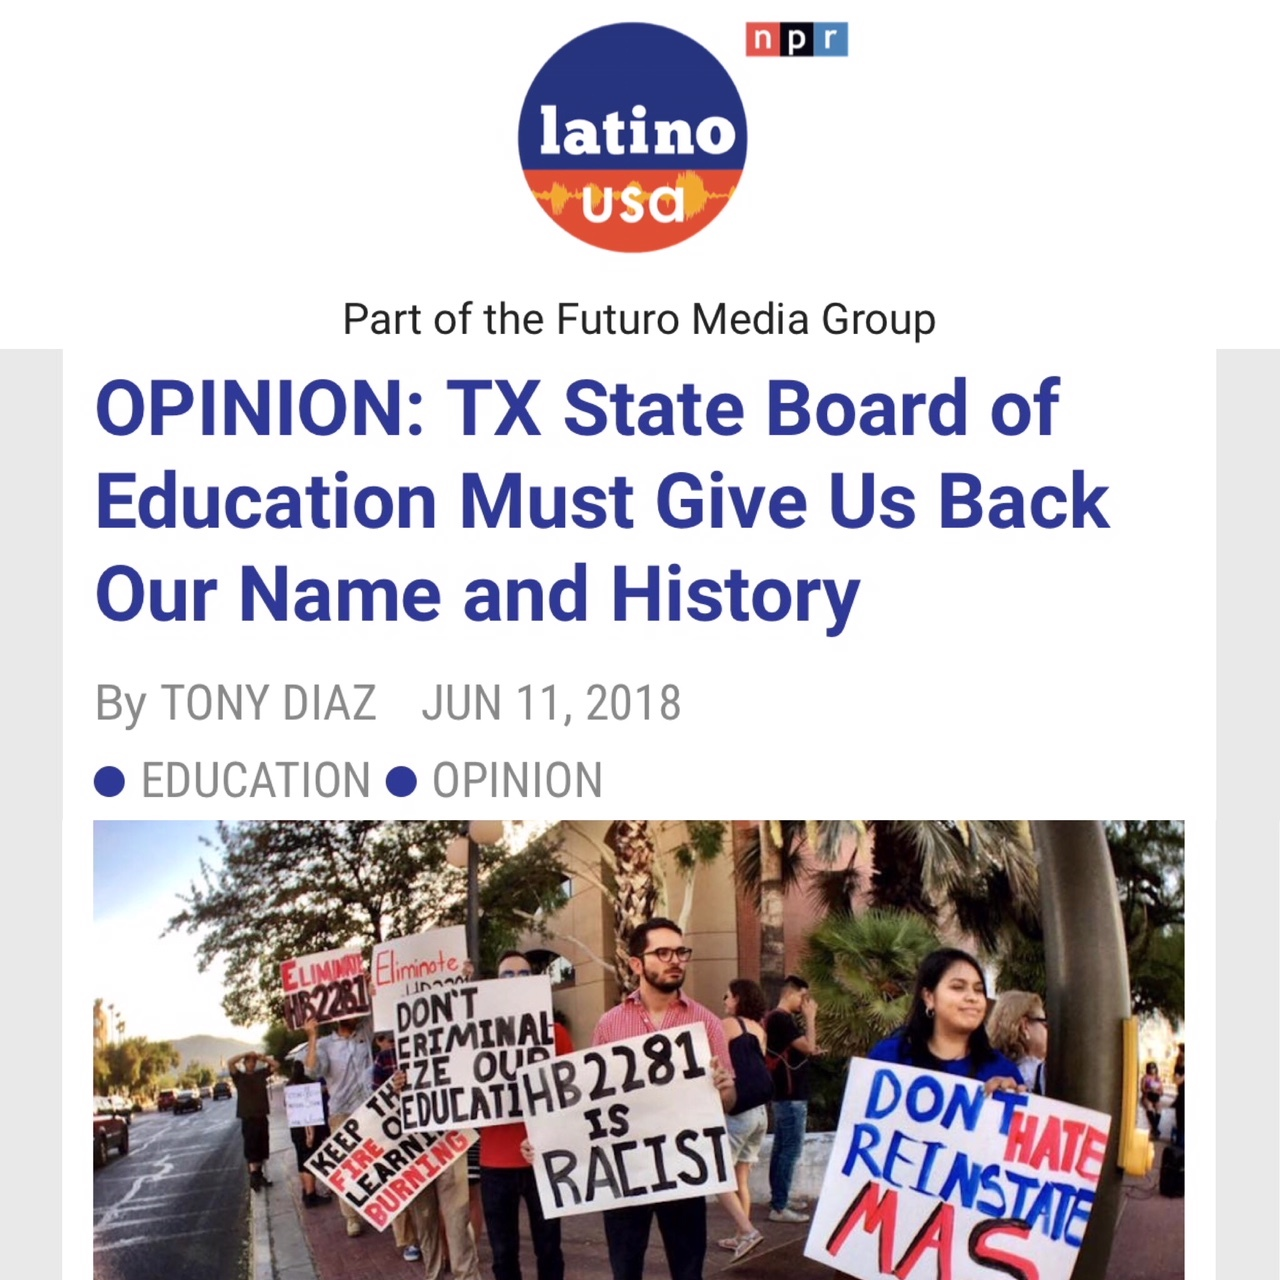 LatinoUSA: TX State Board of Ed, Give Us Back Our Name and History